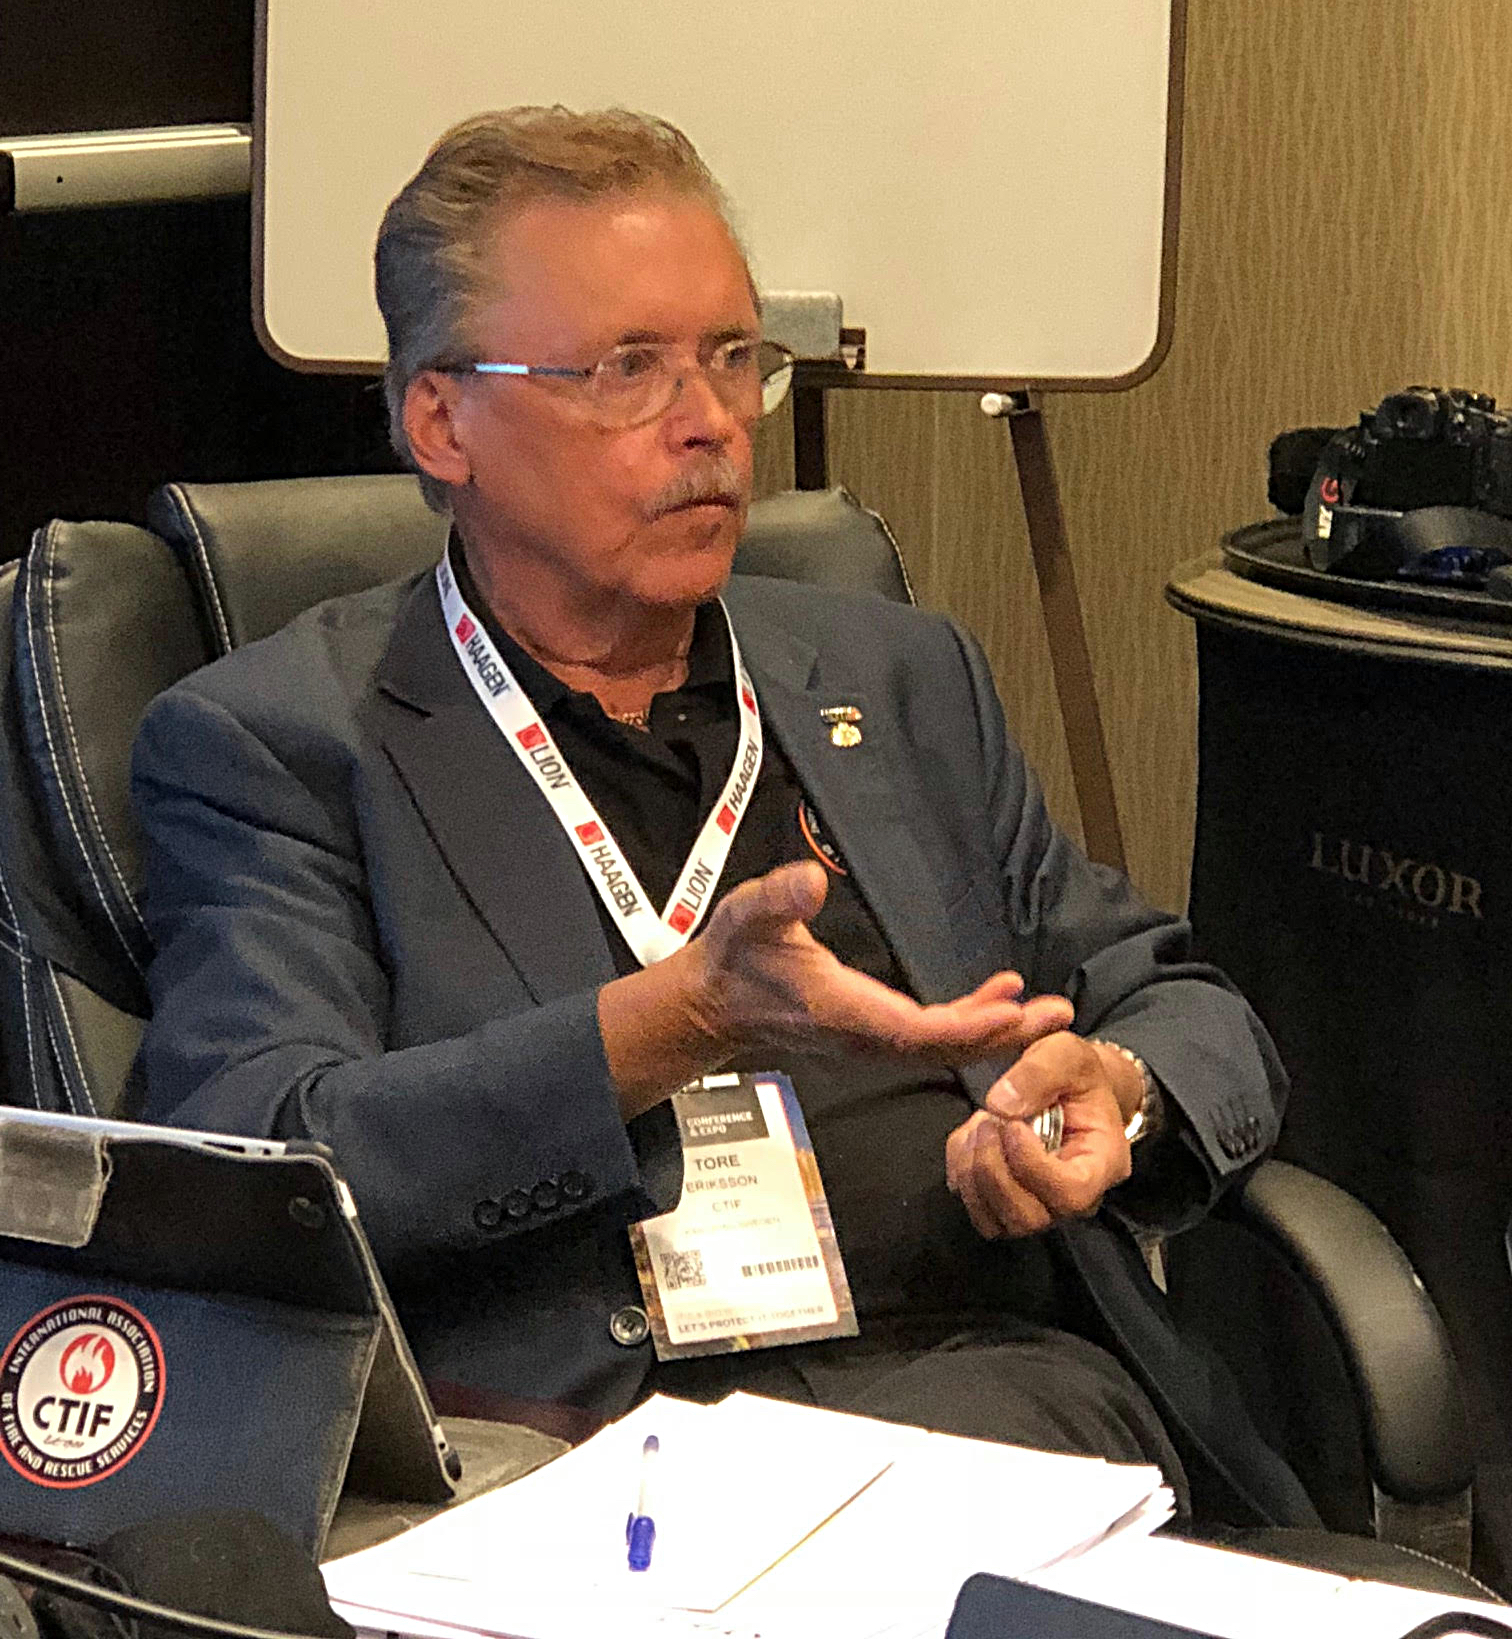 CTIF President Tore Eriksson at Executive Committee in Las Vegas 2018.